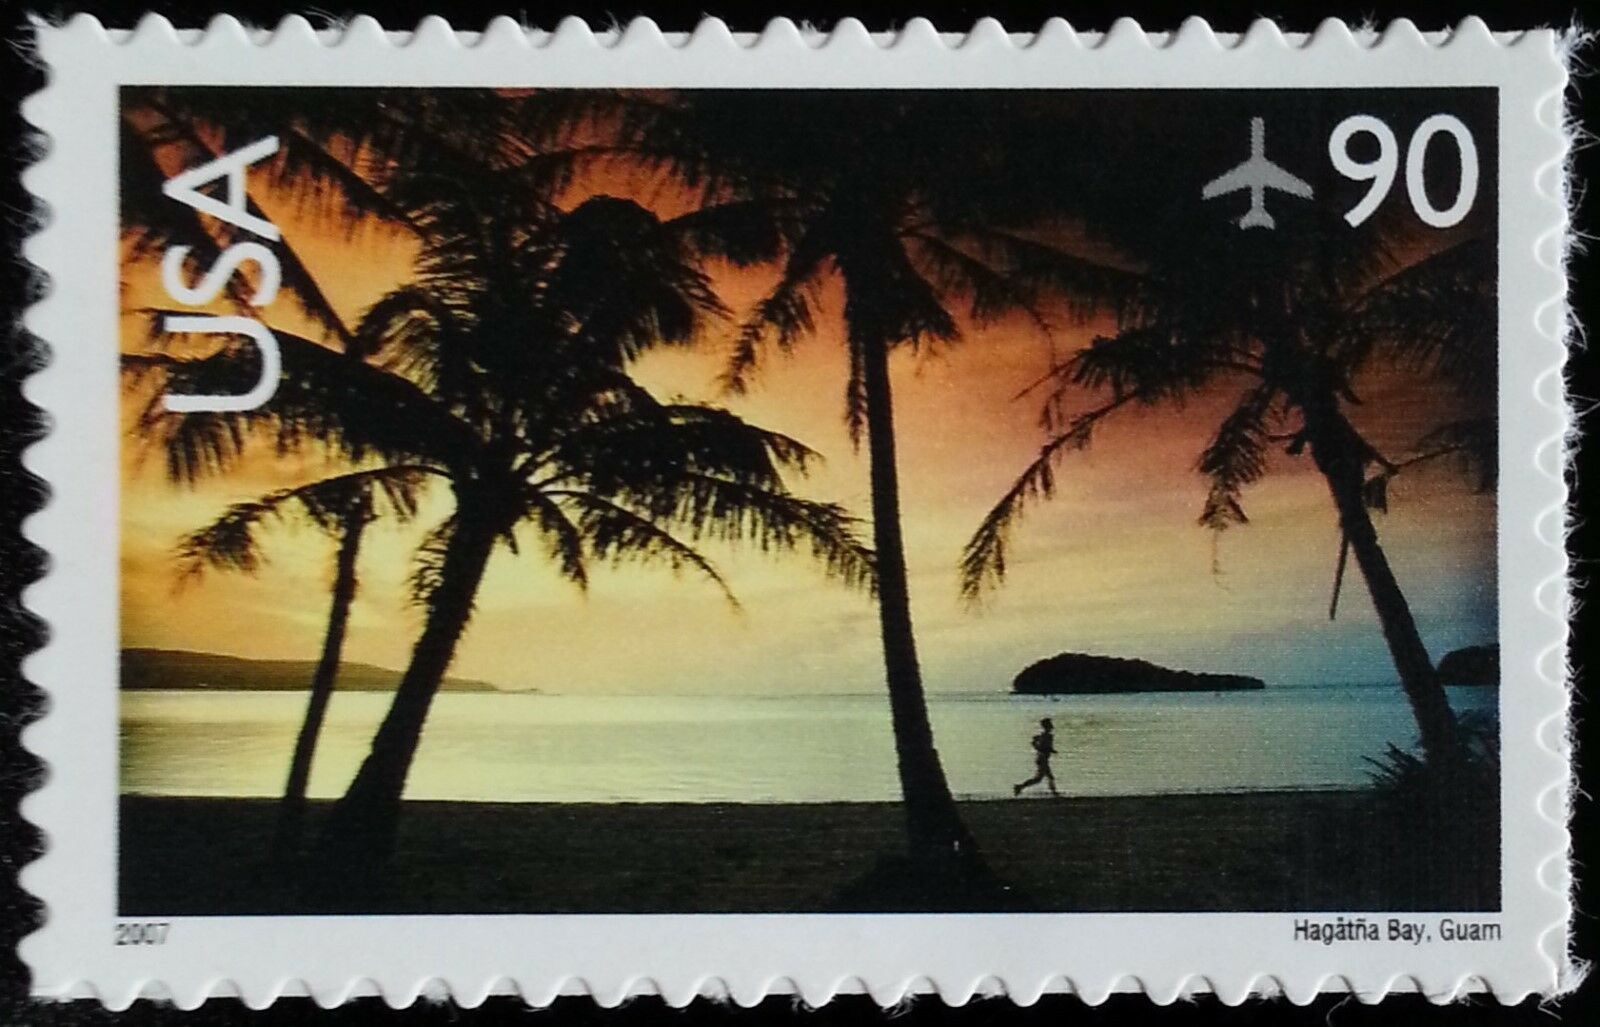 2007 90c Hagatna Bay, Guam Scott C143 Mint F/VF NH